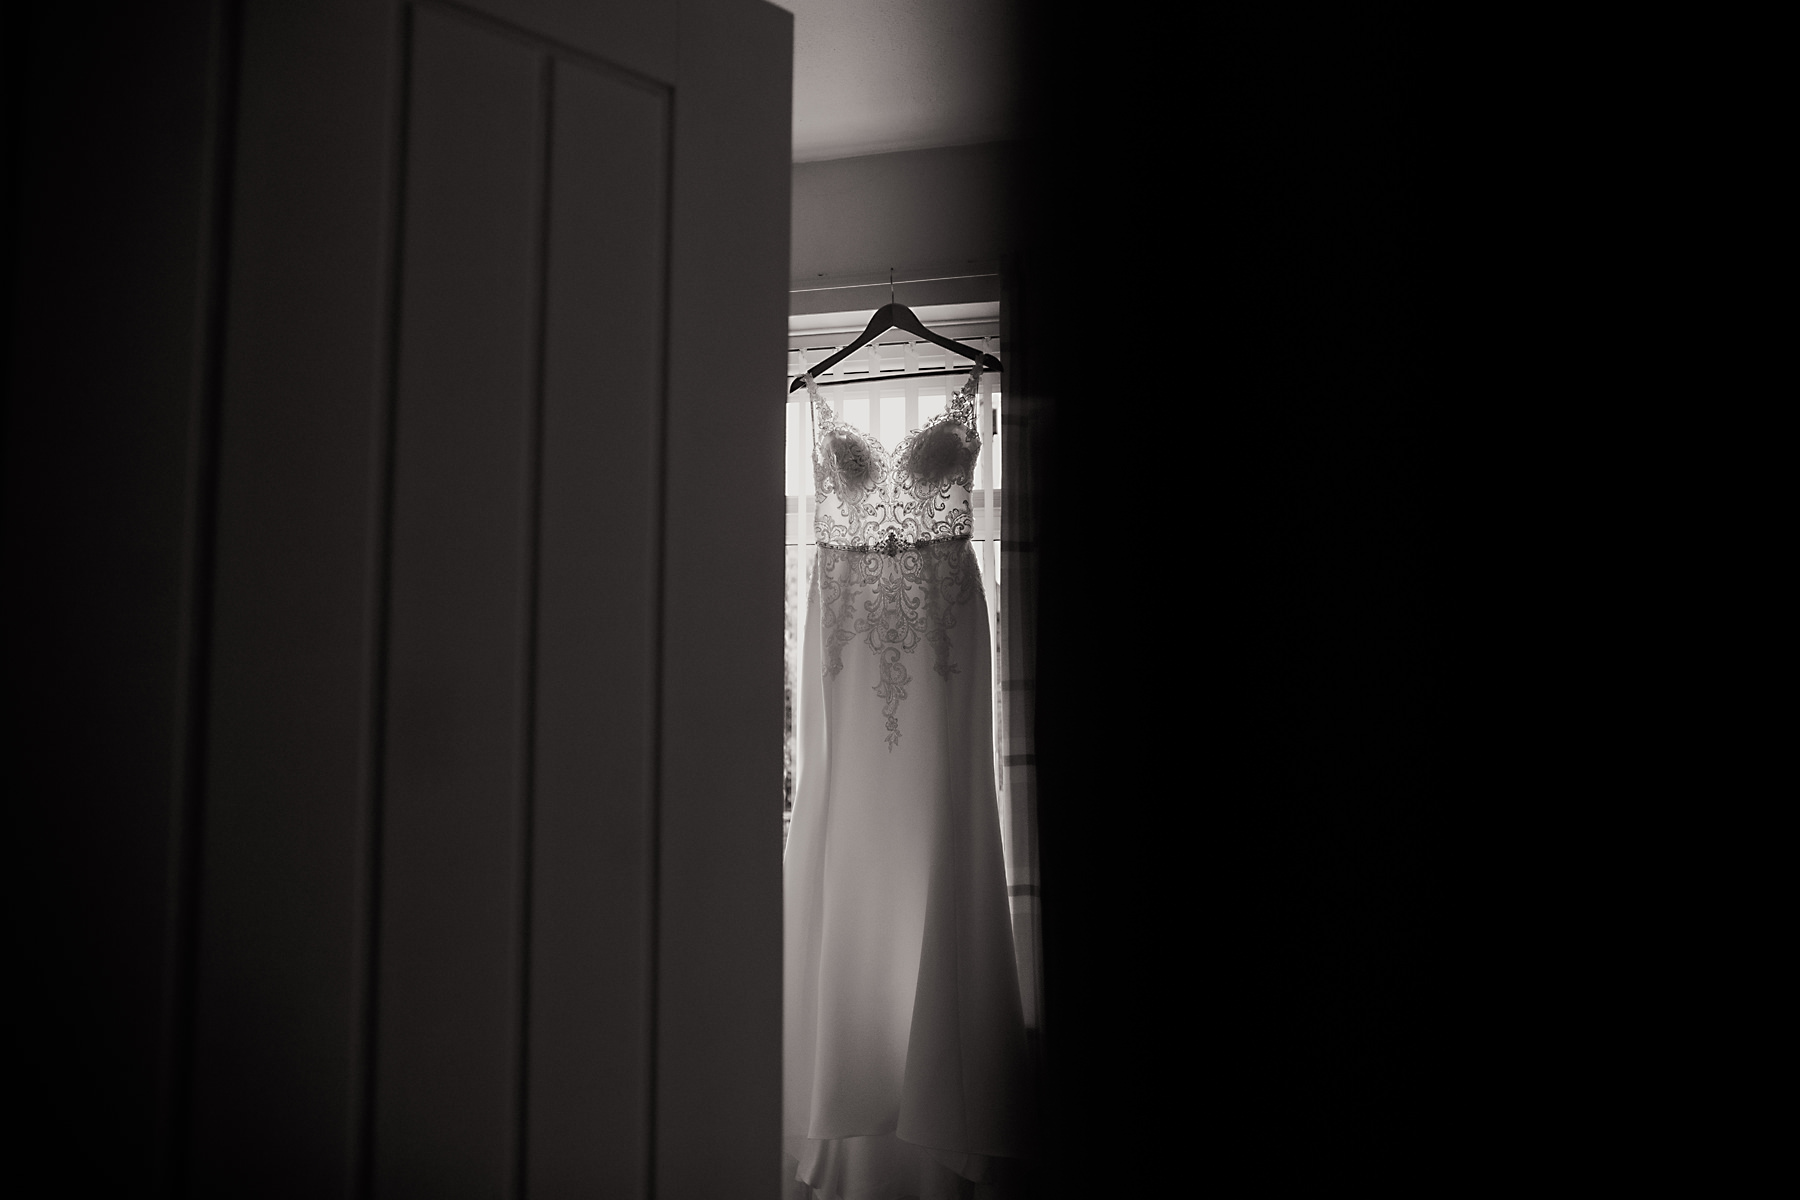 wedding dress window photo